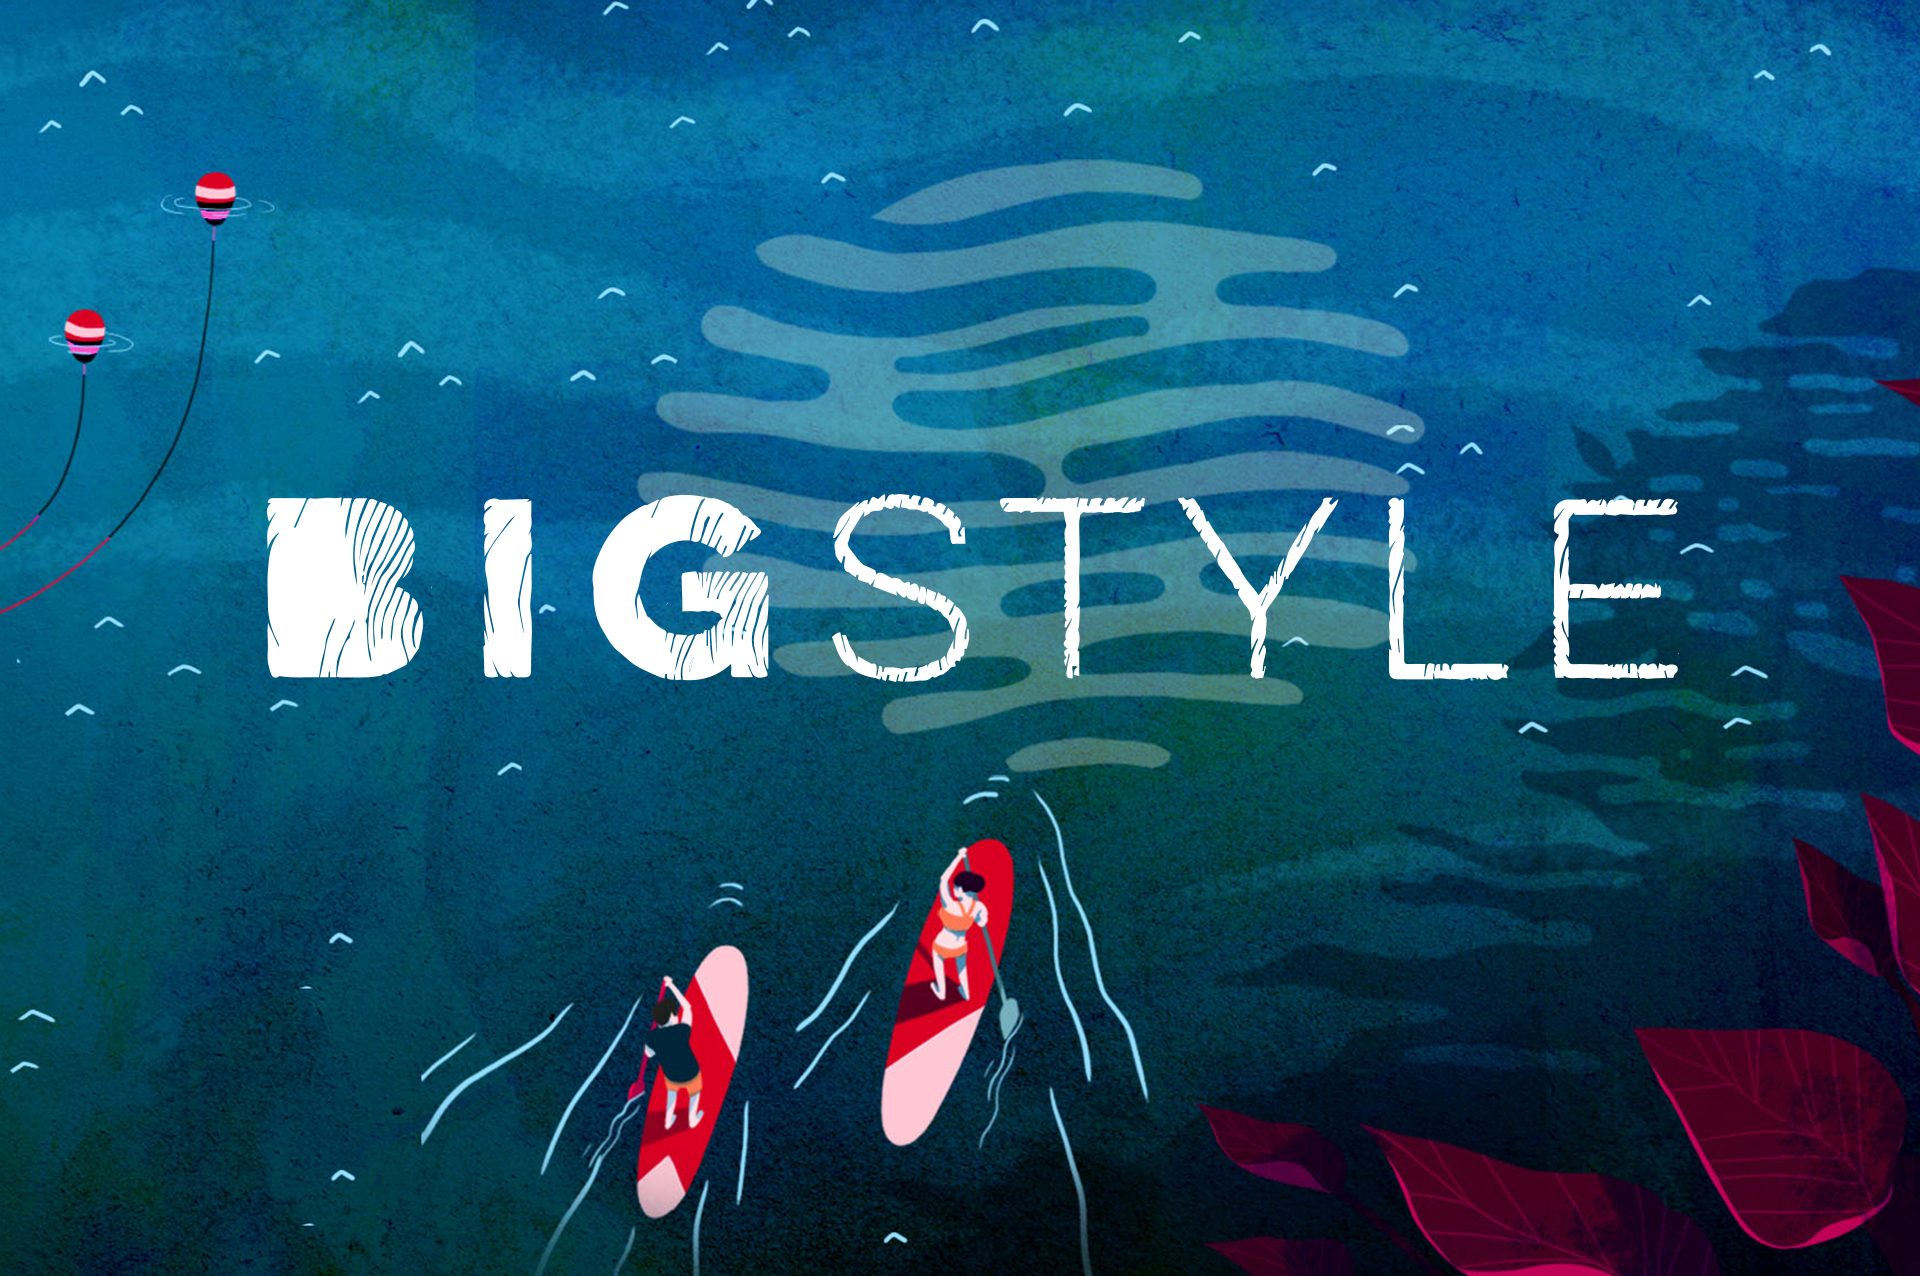 Cover image: BigStyle